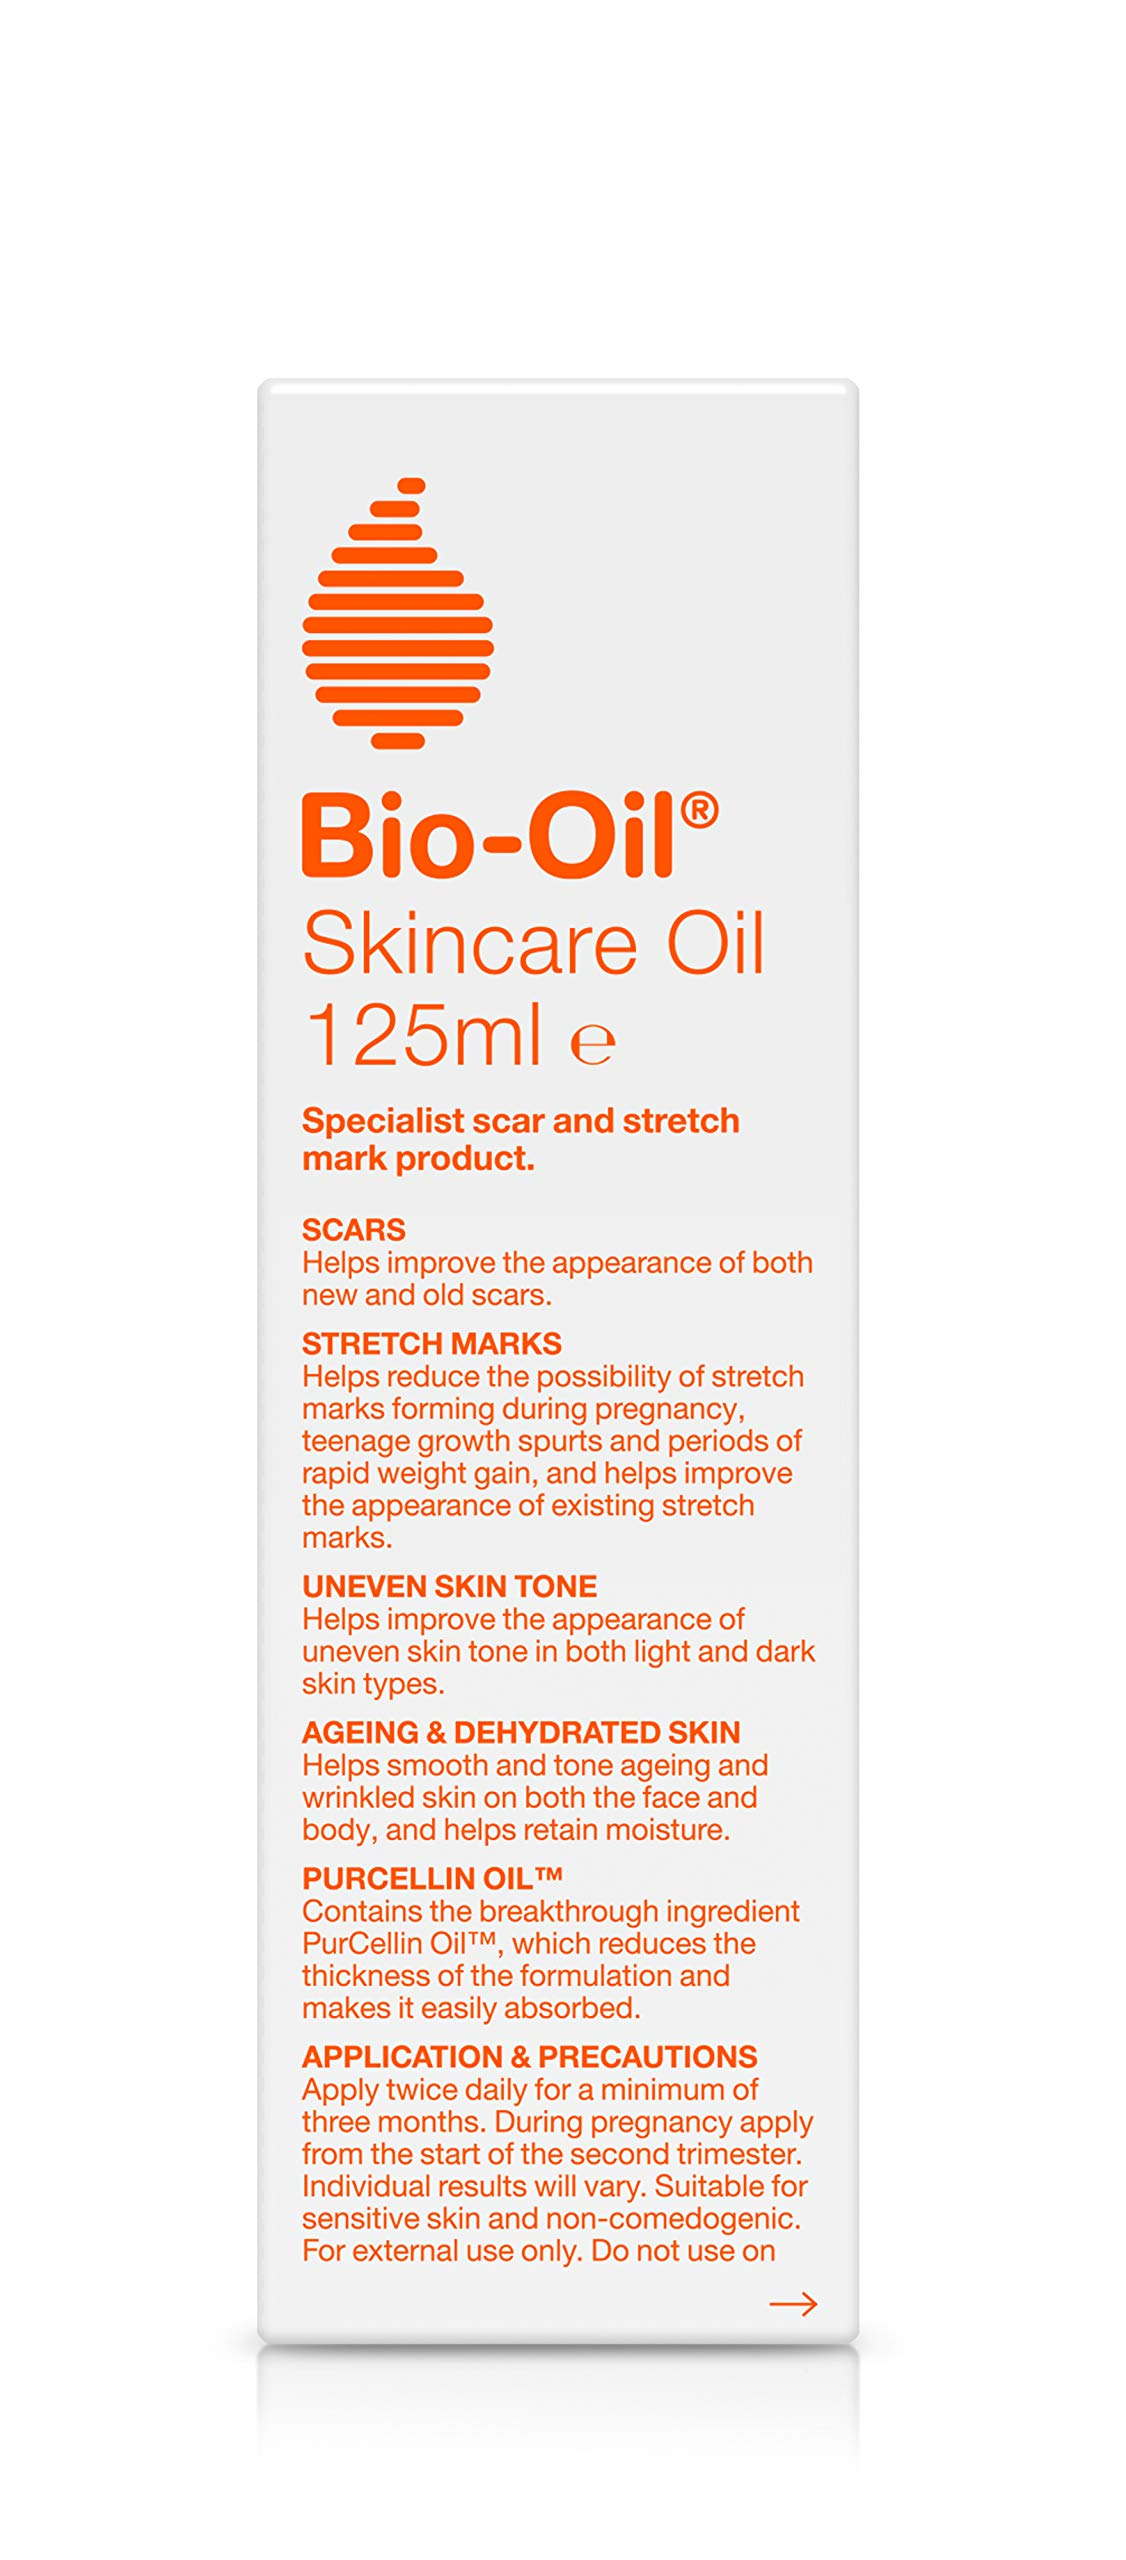 Bio-Oil Skincare Oil – Improve the Appearance of Scars, Stretch Marks and Skin Tone – 1 x 125 ml